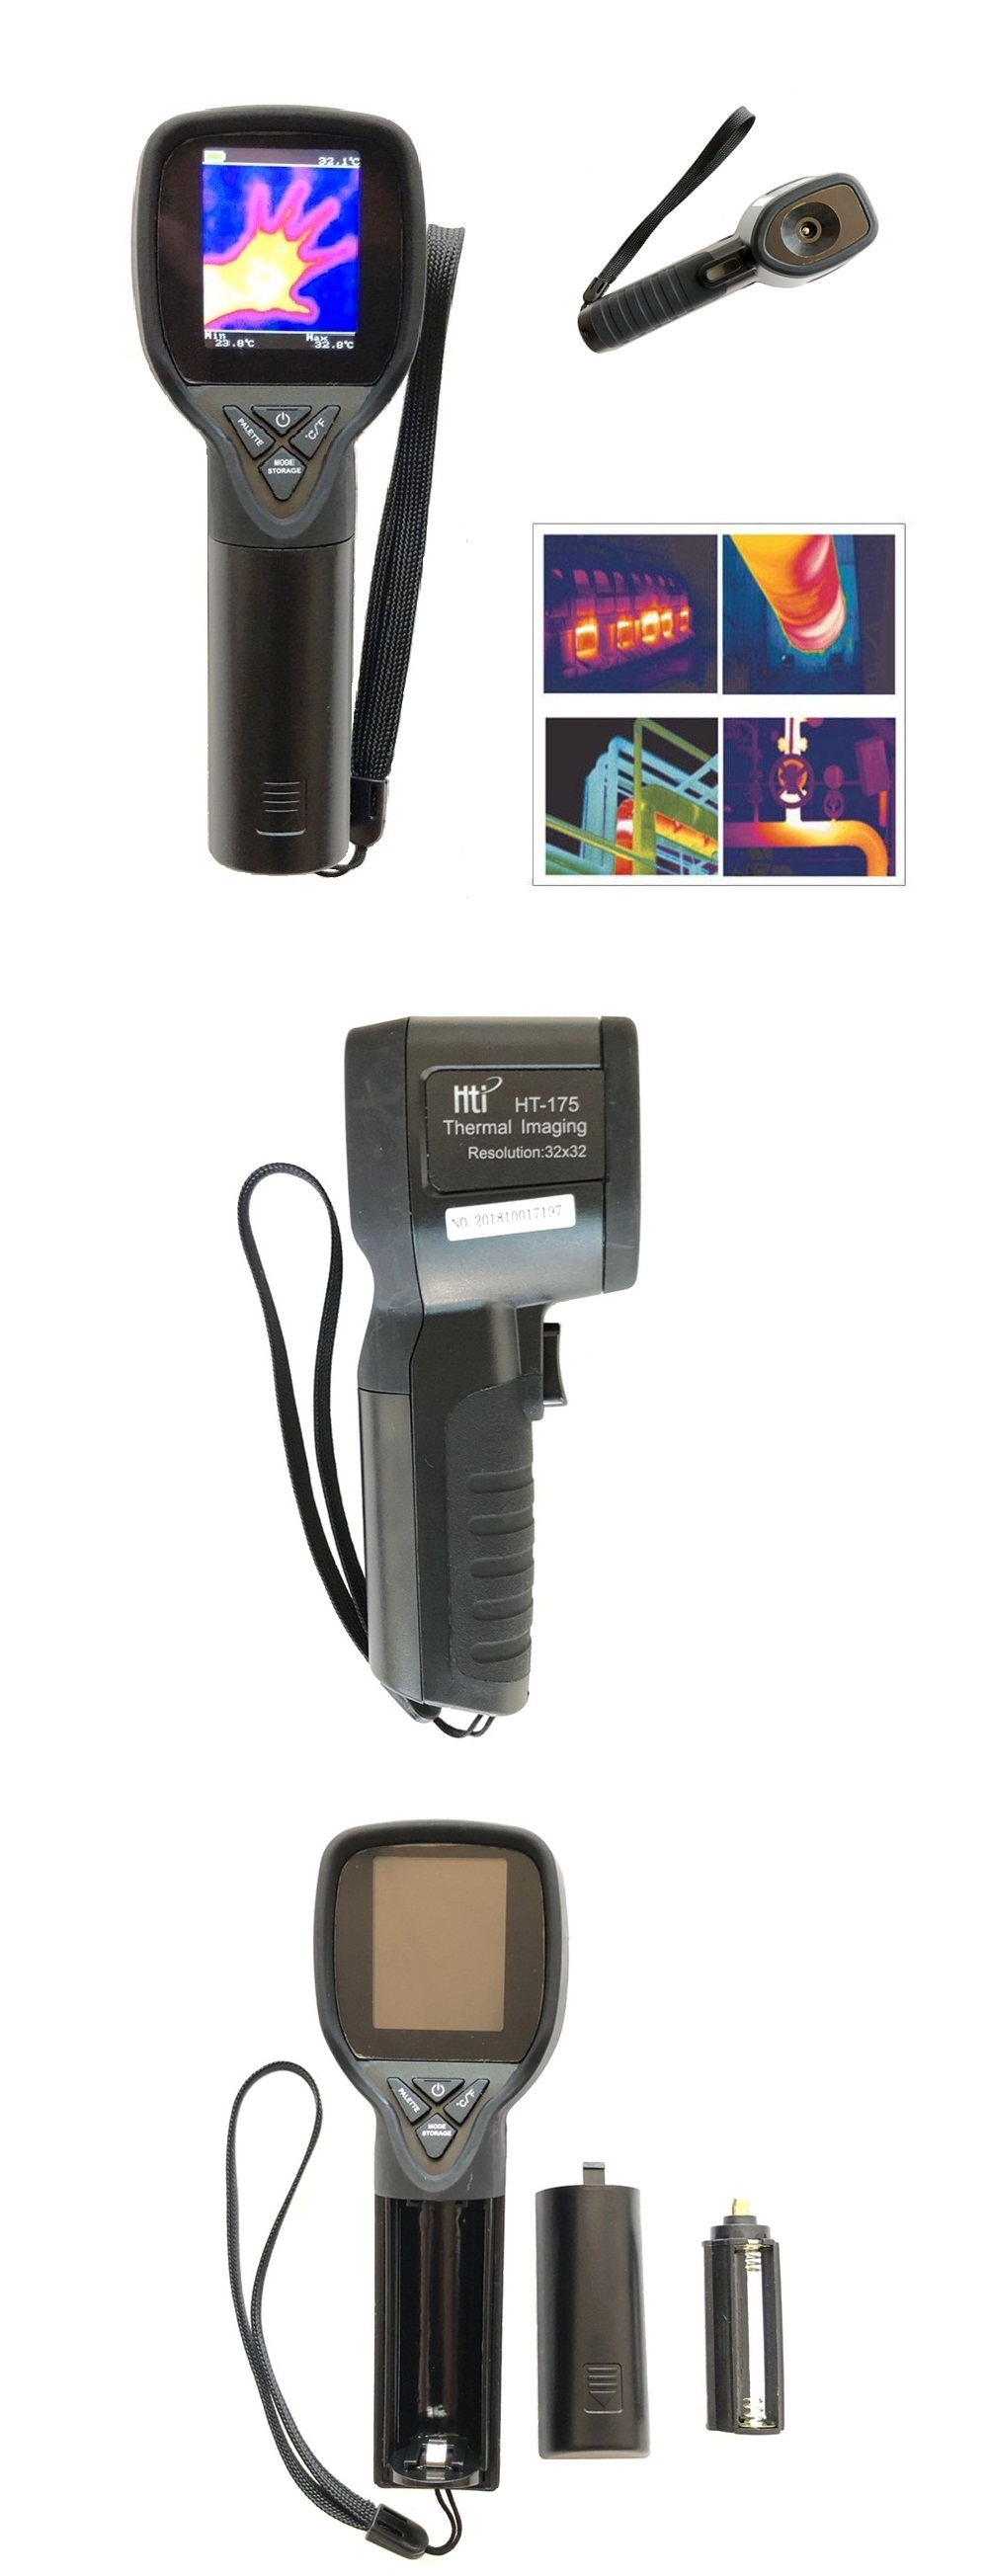 HT-175 Infrared Thermal Imaging Camera Digital Thermal Imager -20~300℃ 1024P 32x32 IR Image Resolution 33